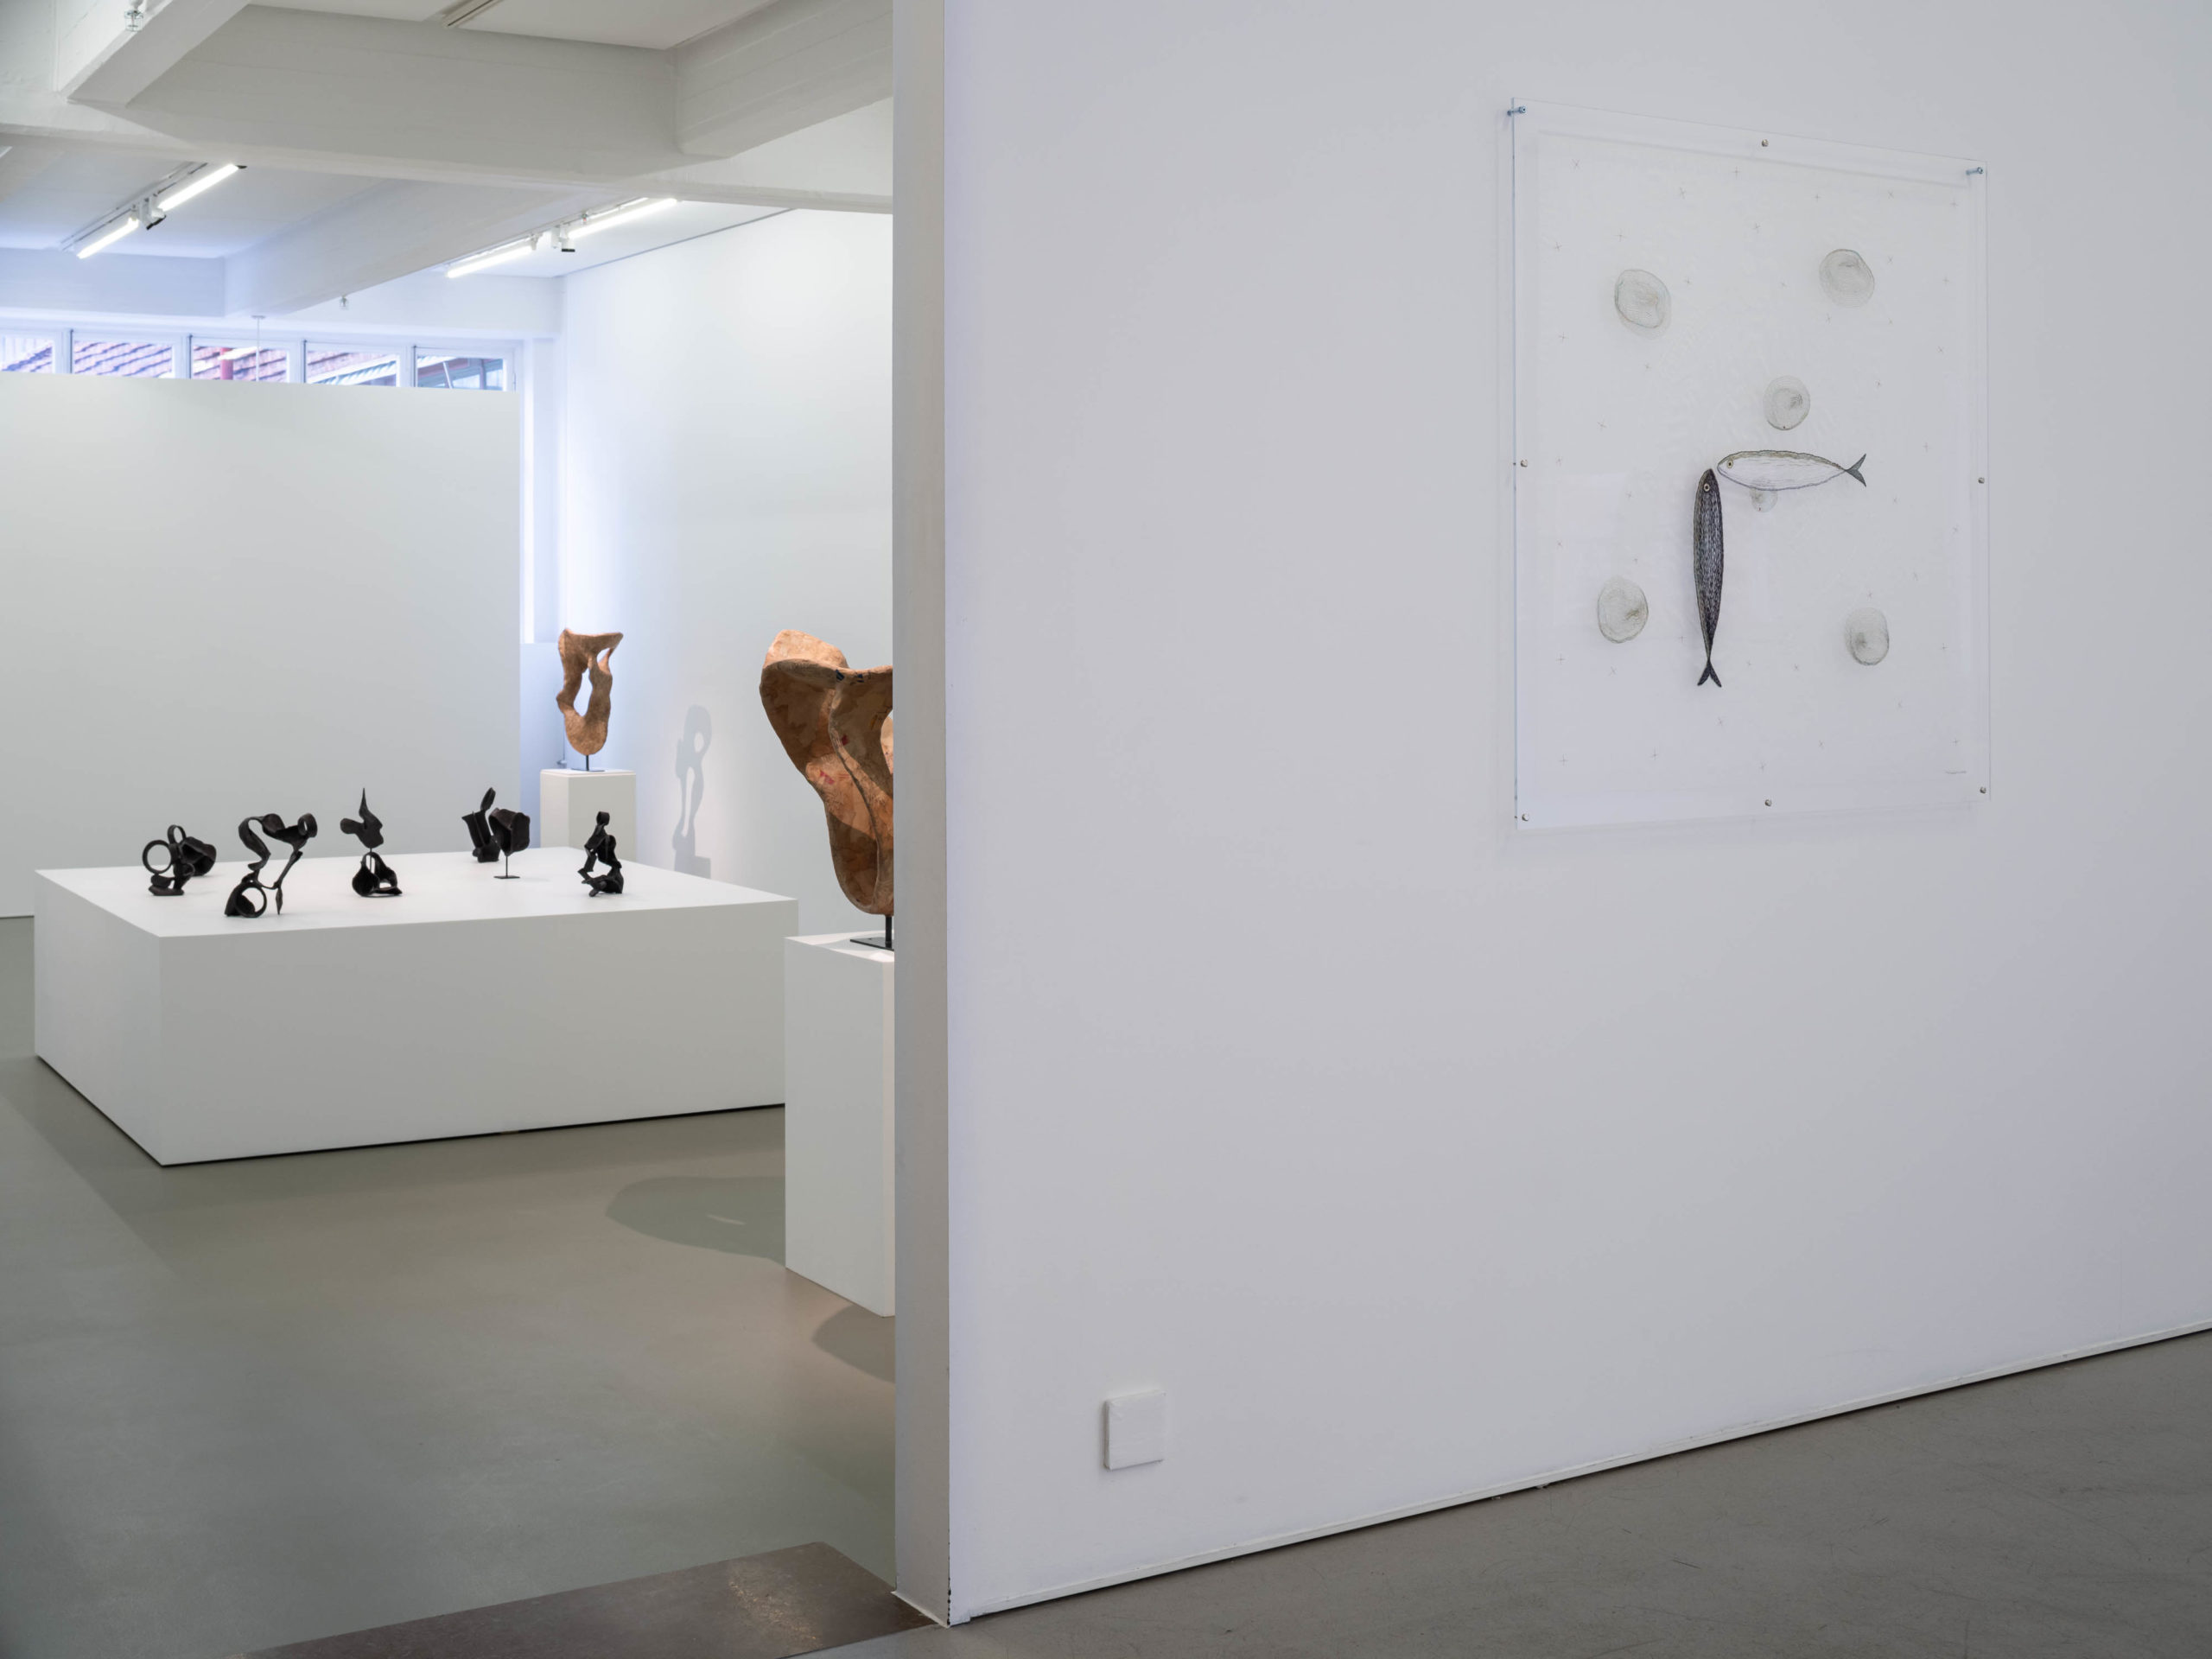 Carl Boutard, Paper Space, 2020, installation view. Photo: Jean-Baptiste Béranger